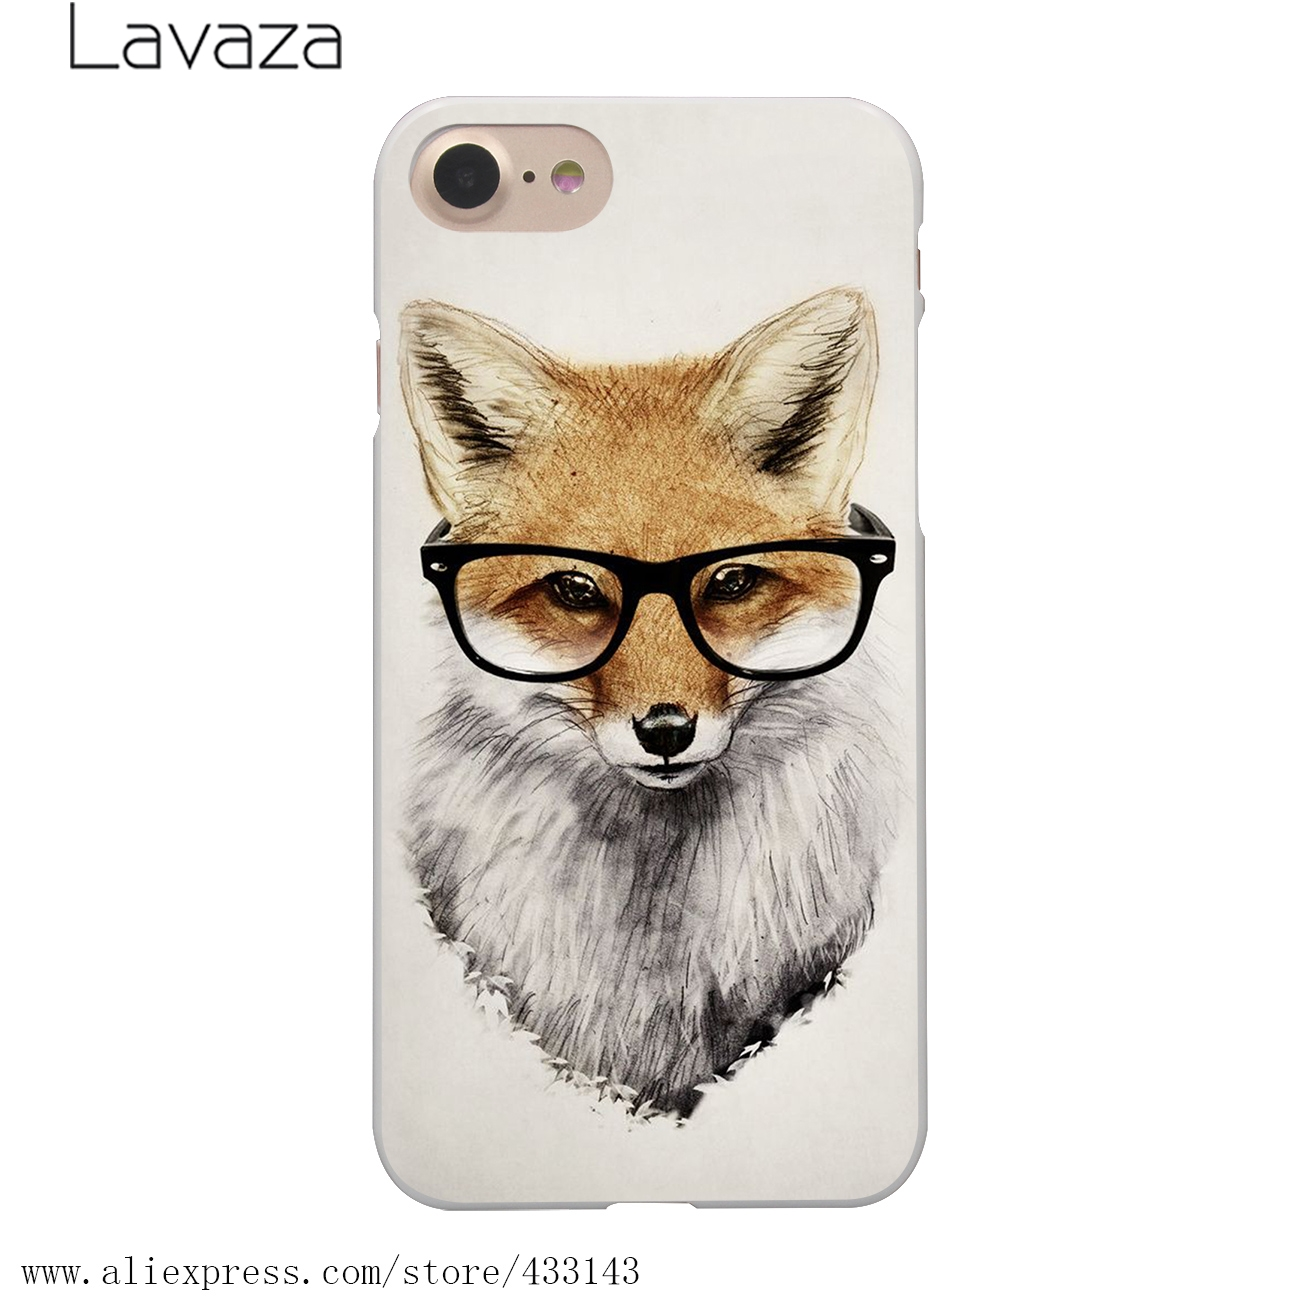 aliexpress com buy lavaza fashion raccoon art print hard white